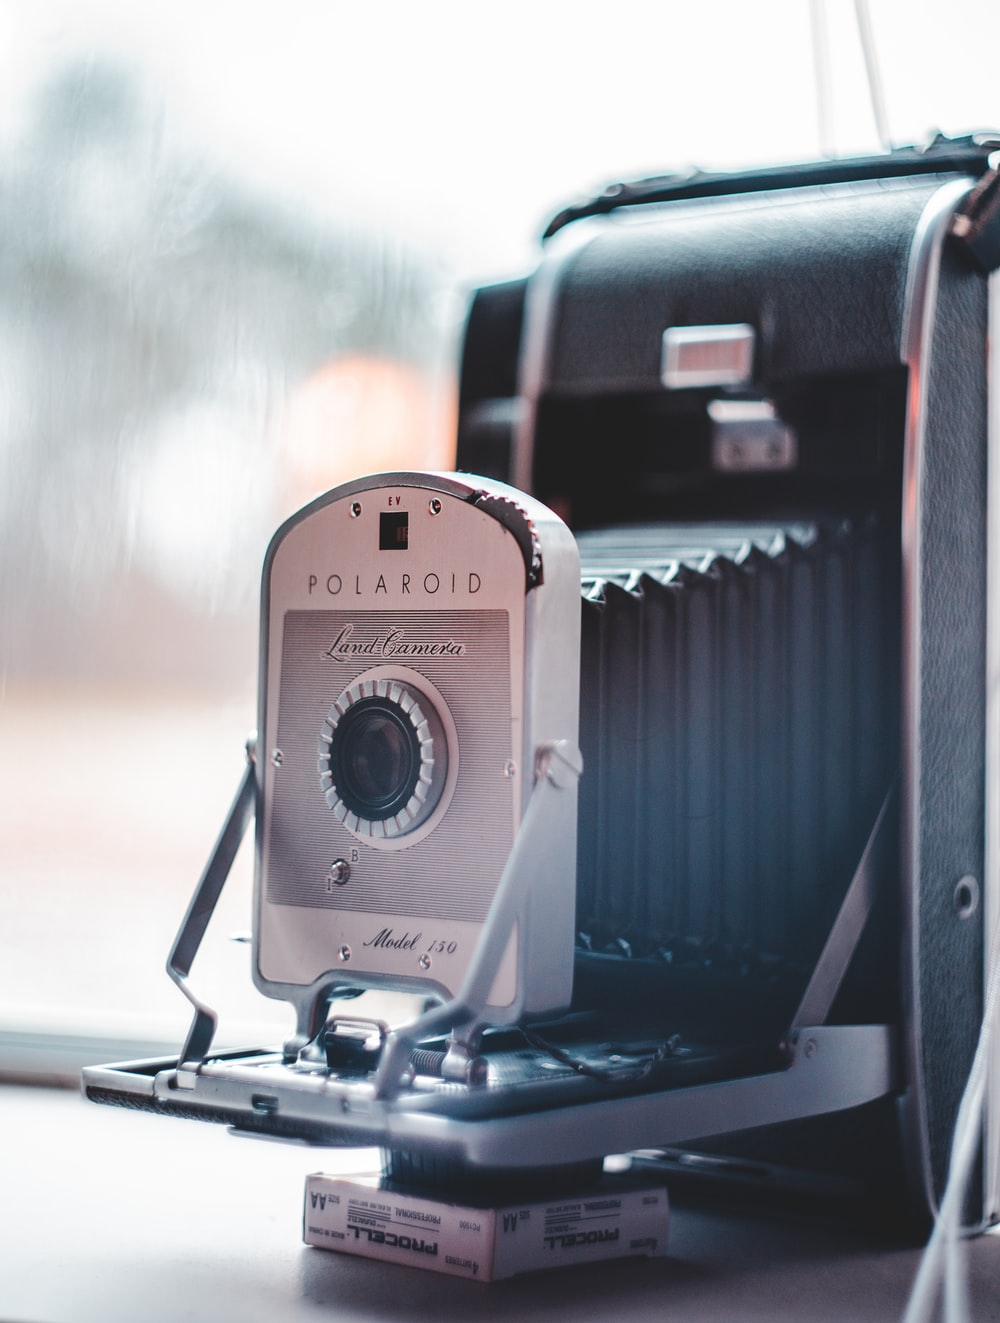 gray and black Polaroid land camera in close-up photography